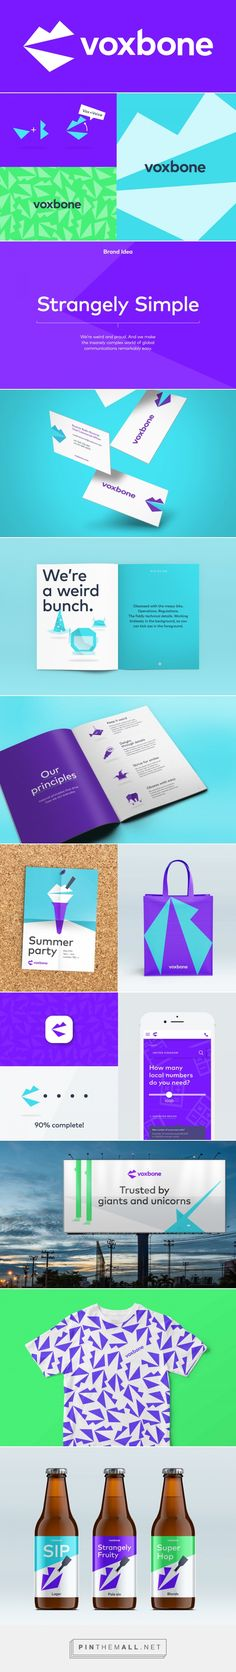 Brand New: New Logo and Identity for Voxbone by Onwards... - a grouped images picture - Pin Them All